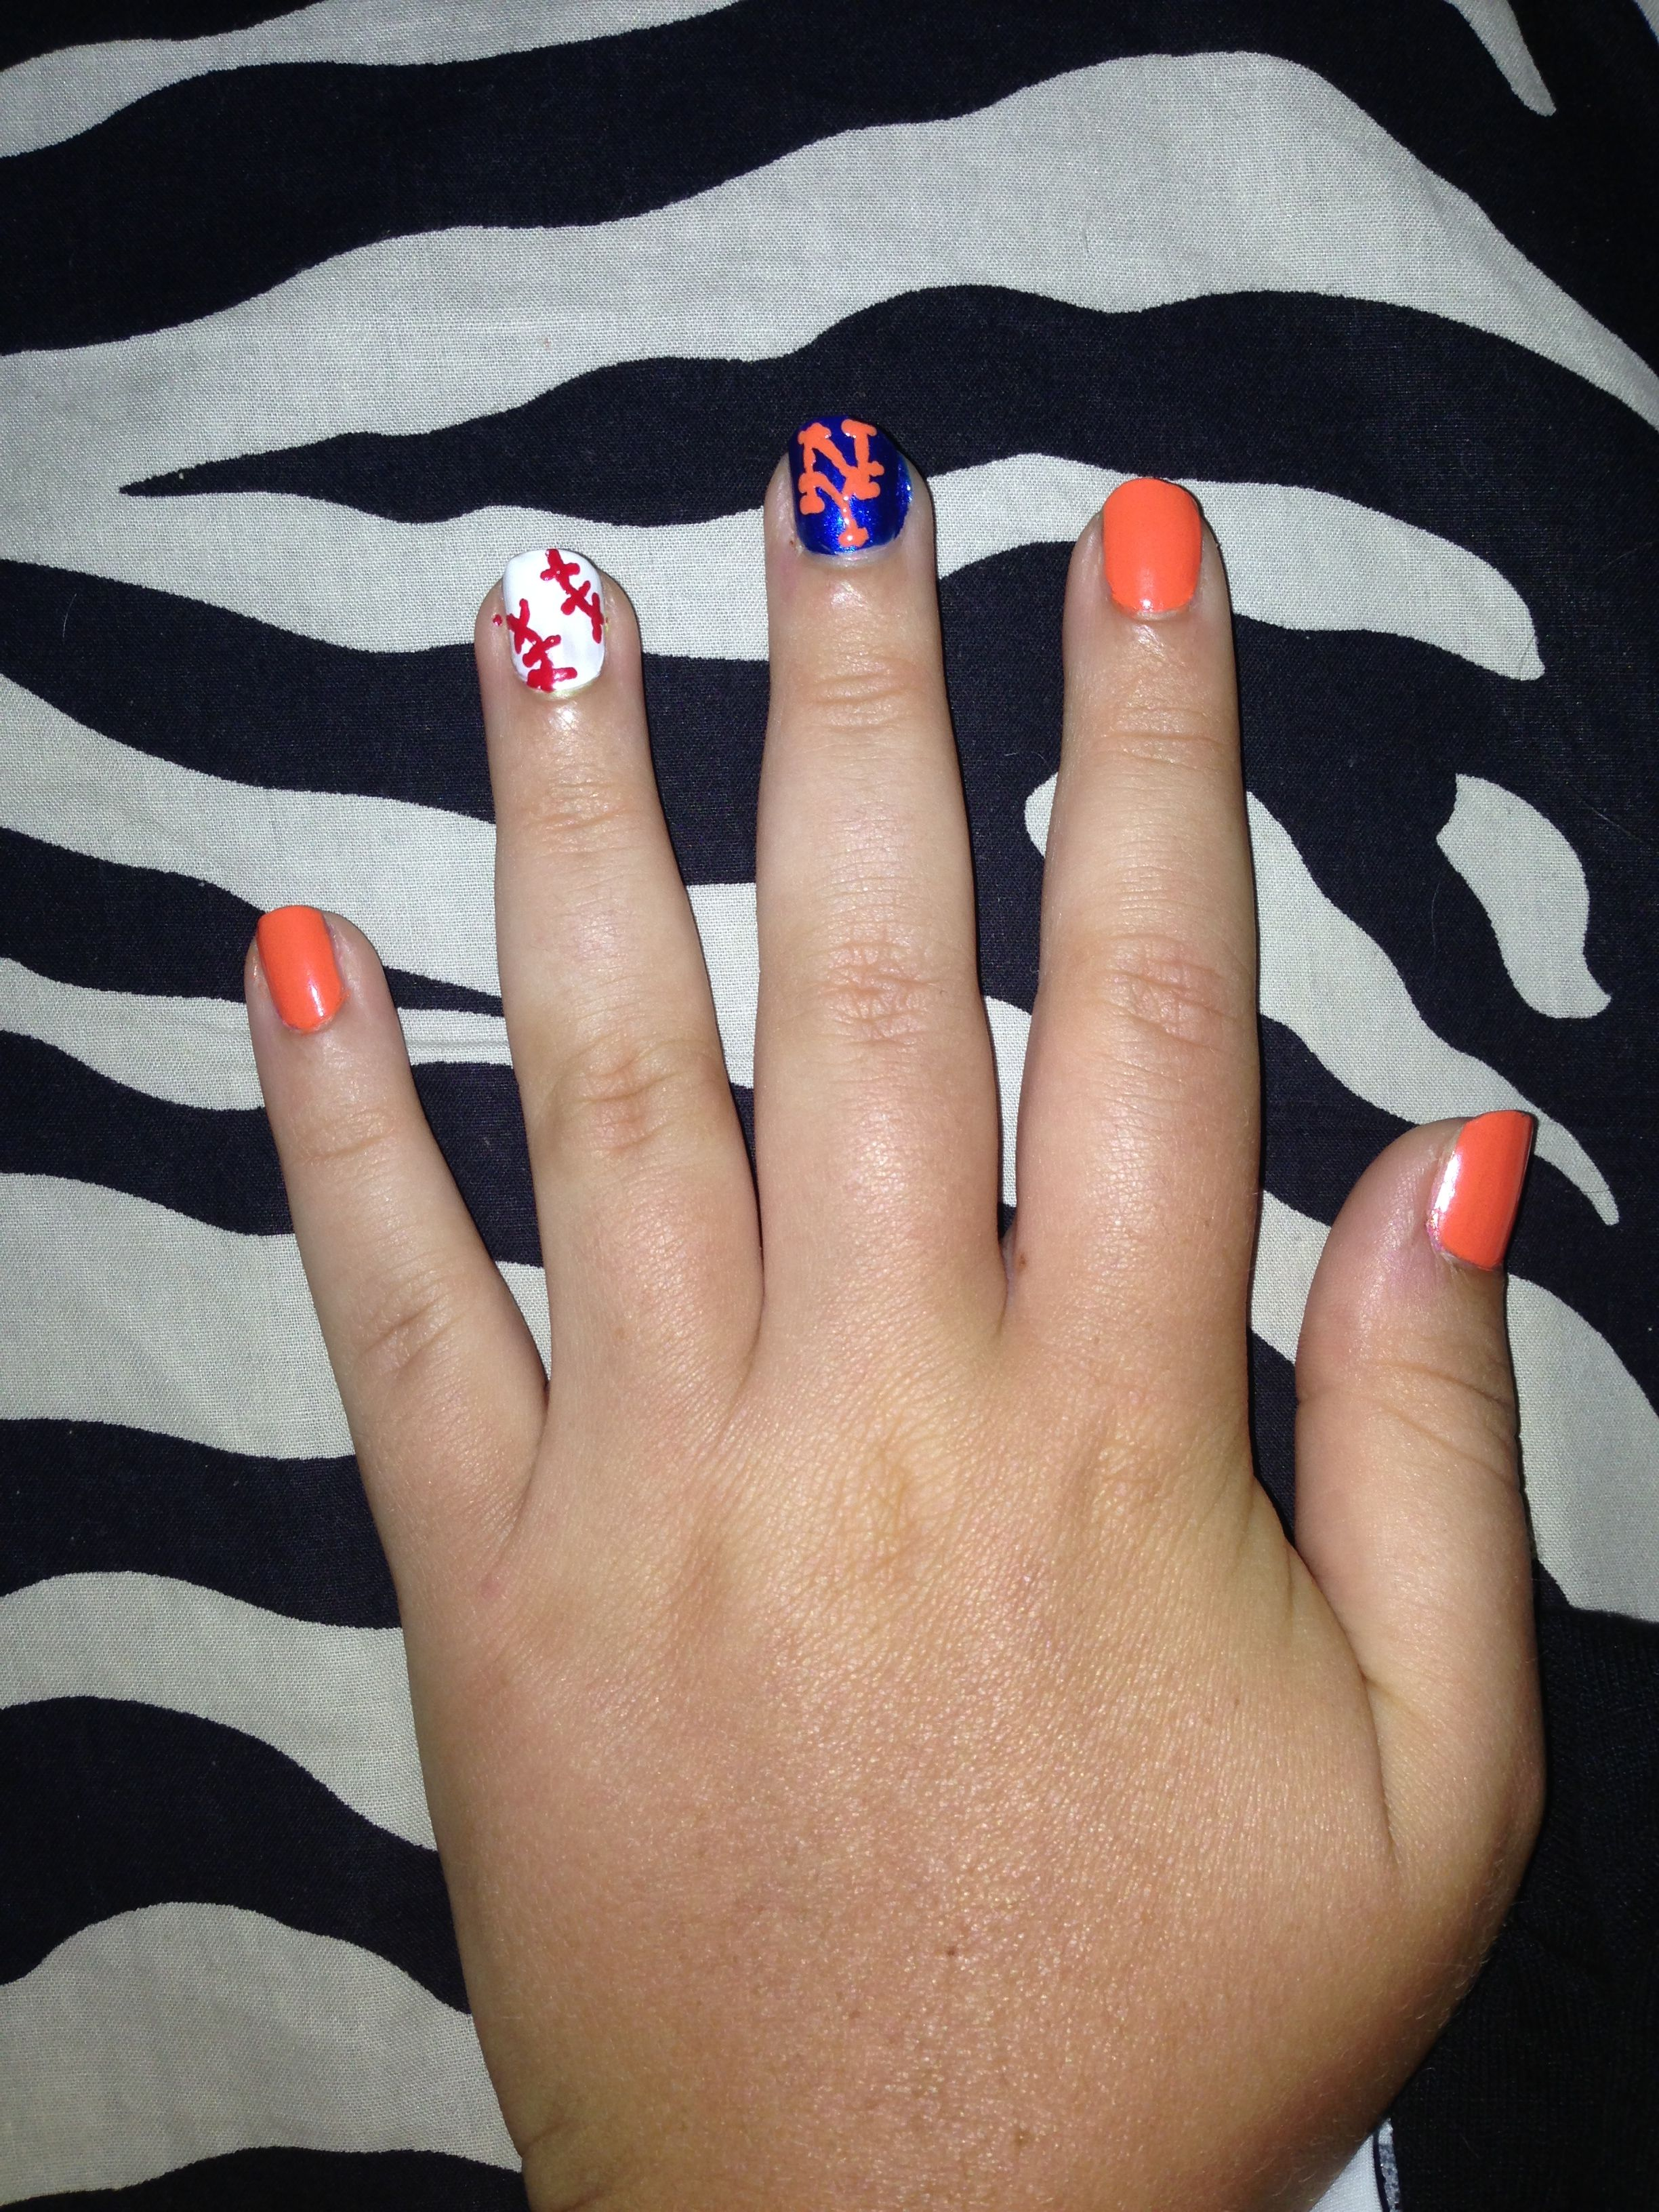 NY Mets nail art #mets #baseball | Cute Stuff | Pinterest | Sports ...